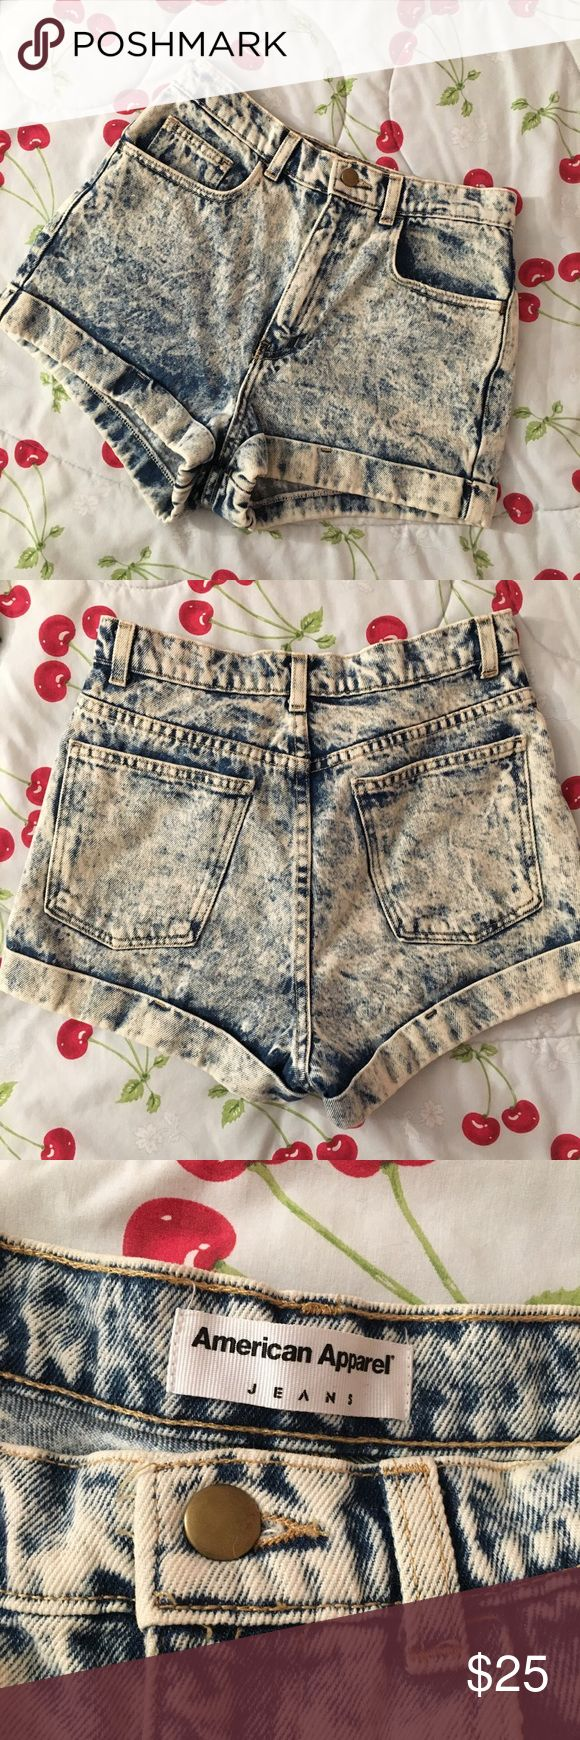 American Apparel Acid Wash Short American Apparel Acid wash jean shorts. High waisted. Five pocket. Flawless. Perfect for summer or fall with tights. Size 27 but would also fit a 25/26. American Apparel Shorts